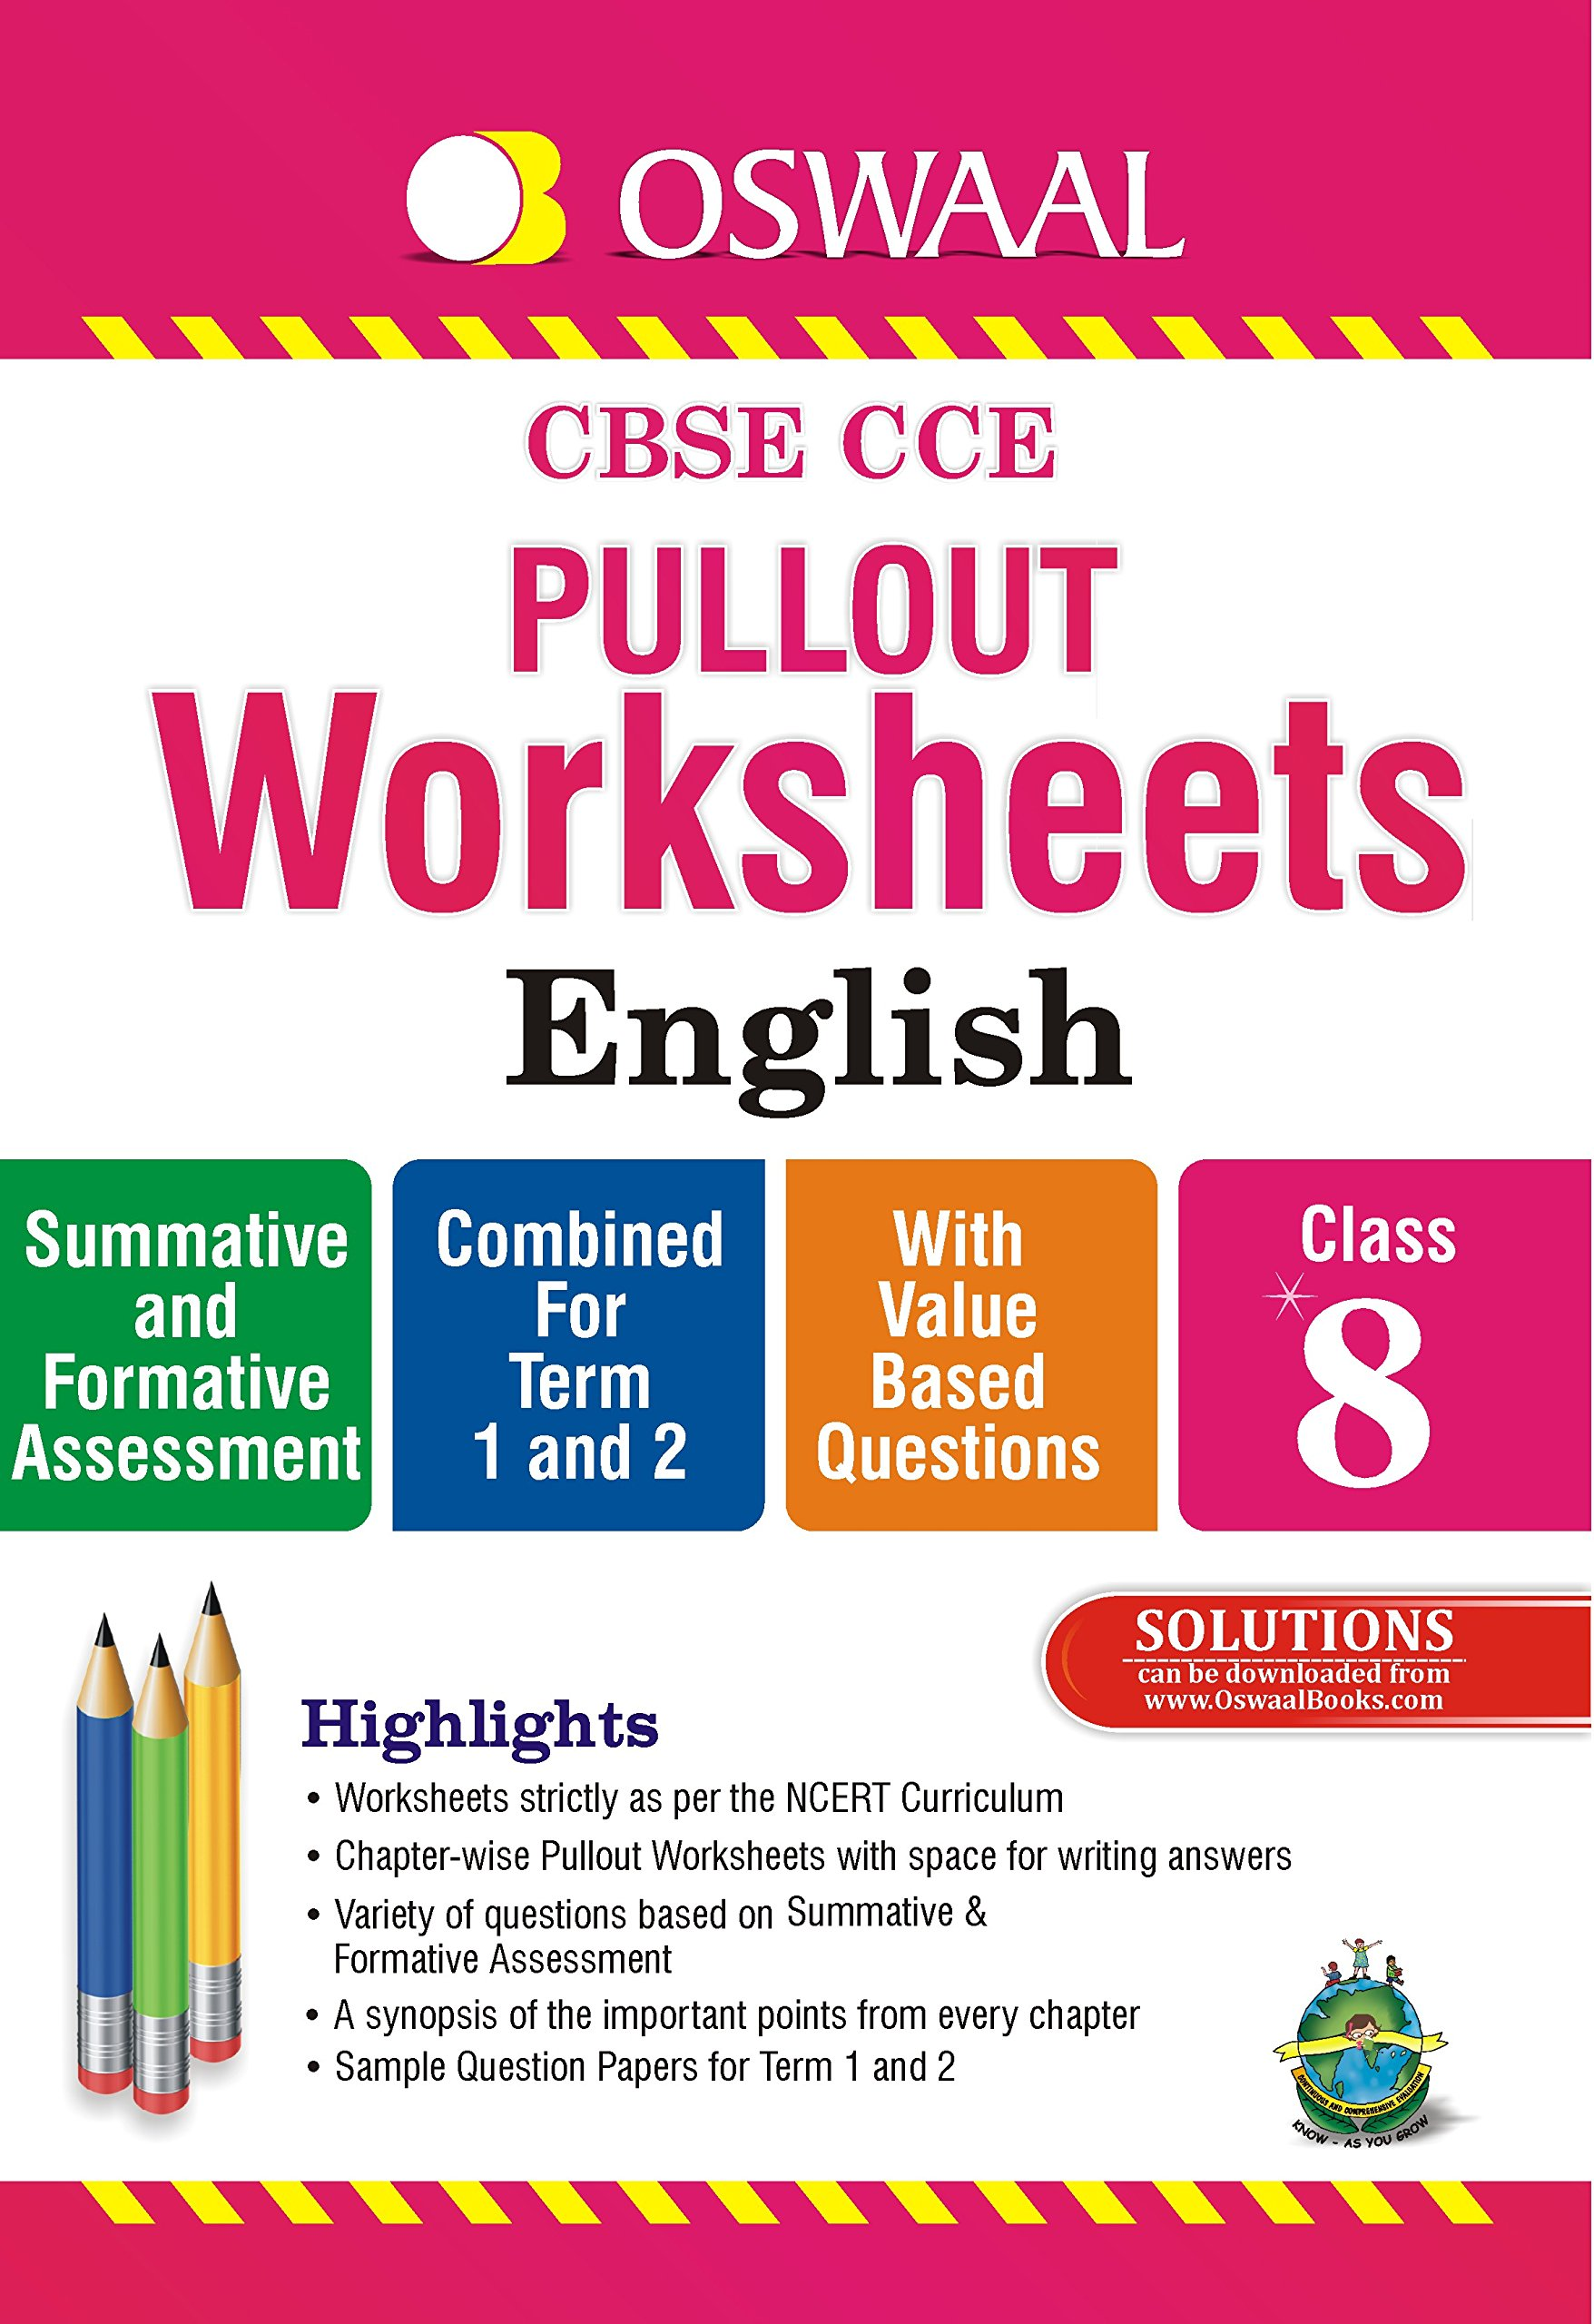 Oswaal CBSE CCE Pullout Worksheets: English for Class 8 Old Edition:  Amazon.in: Panel of Experts: Books